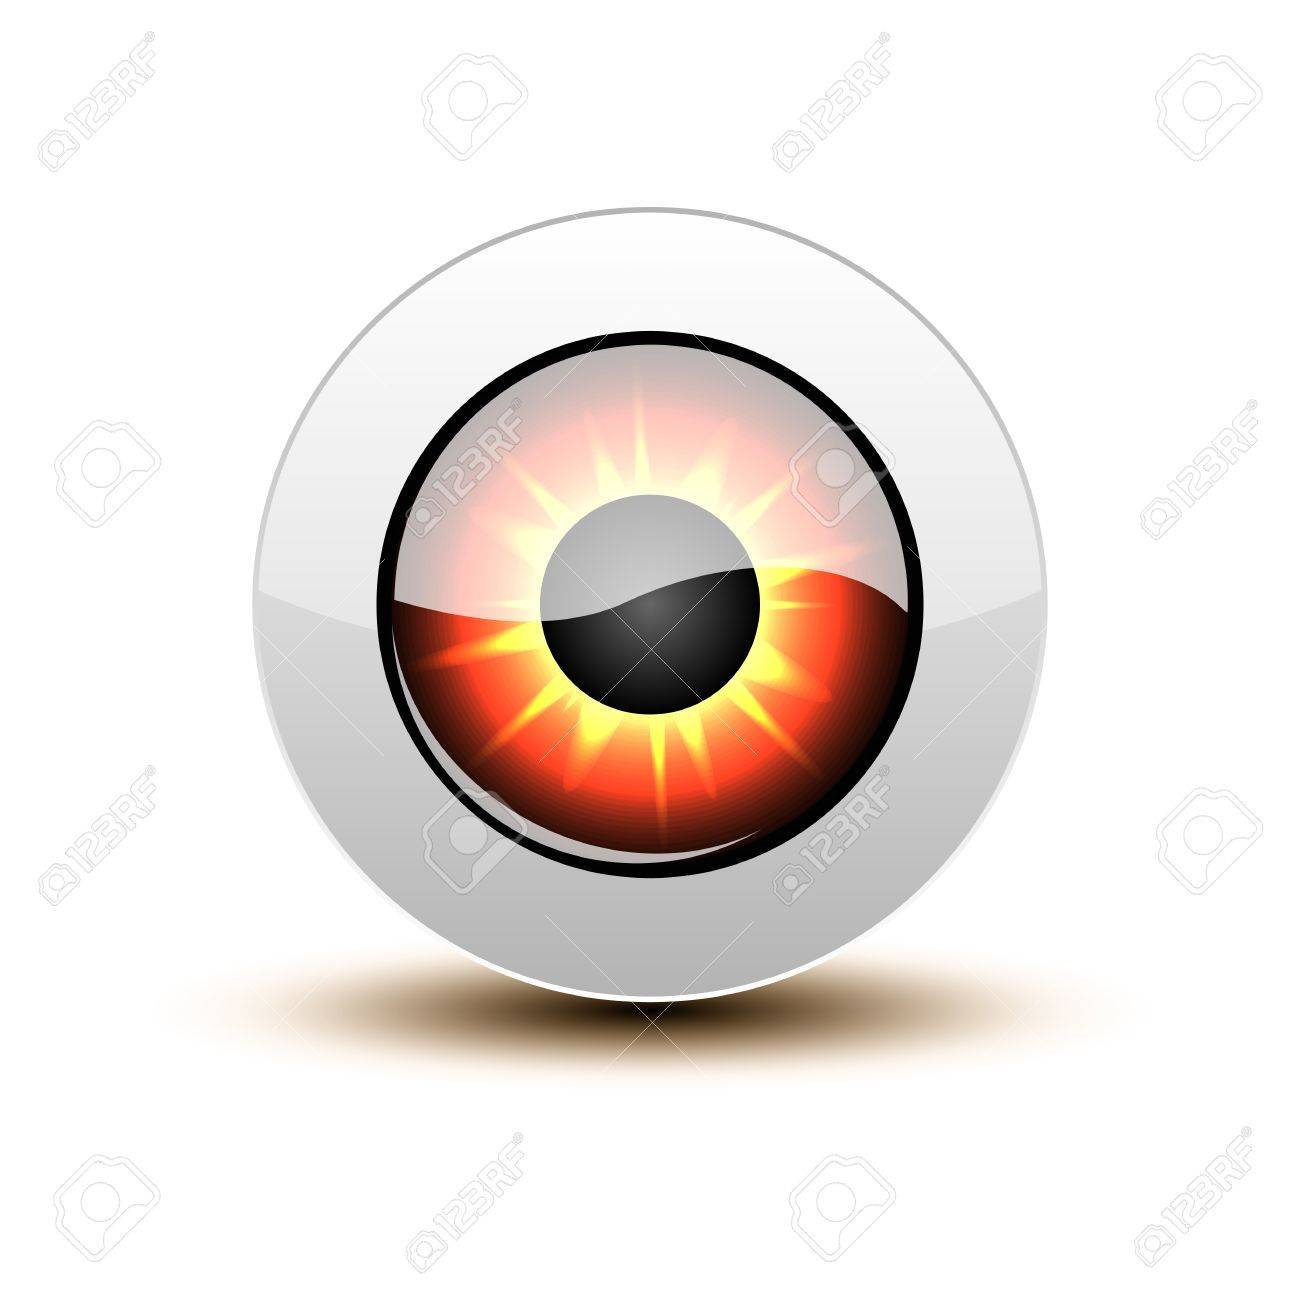 Orange eye icon with shadow on white. Stock Vector - 12391708